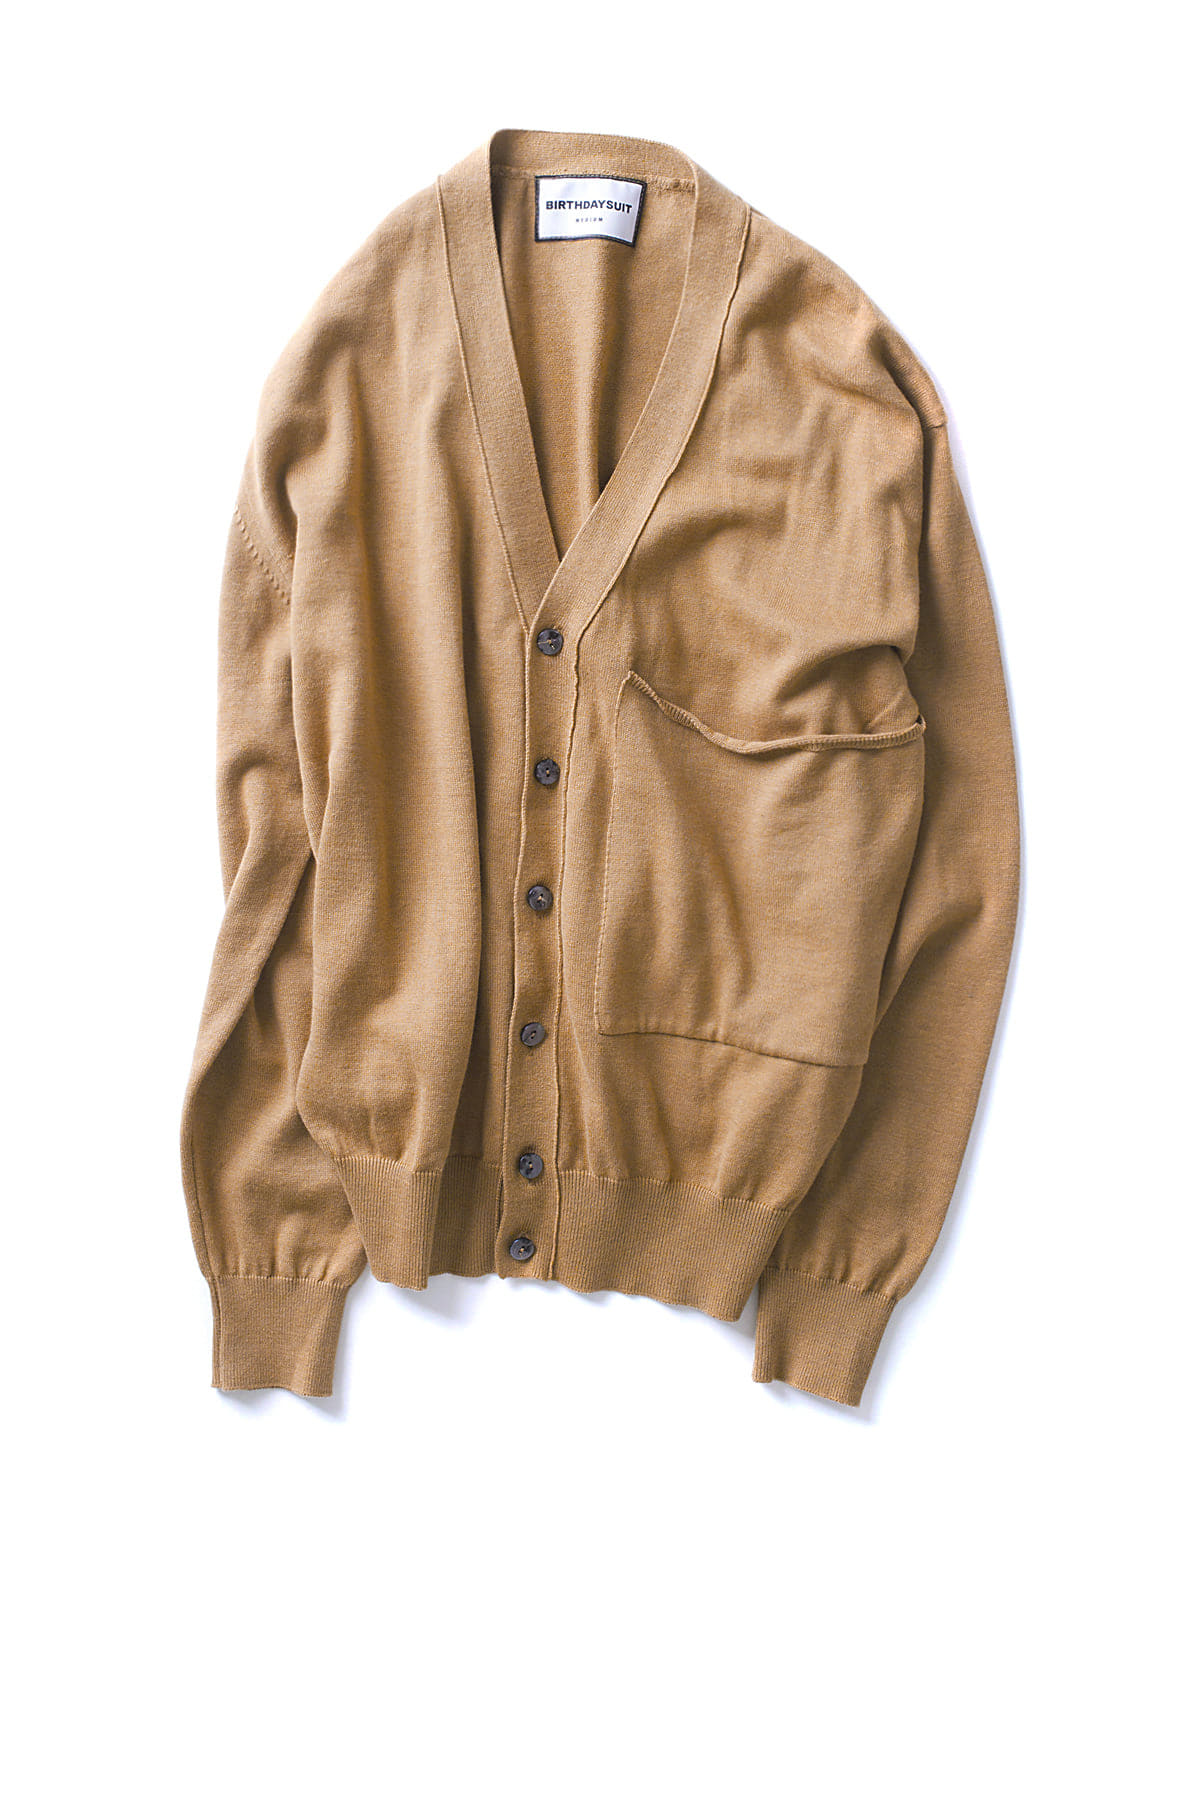 BIRTHDAYSUIT : Big Pocket Knit Cardigan (Beige)